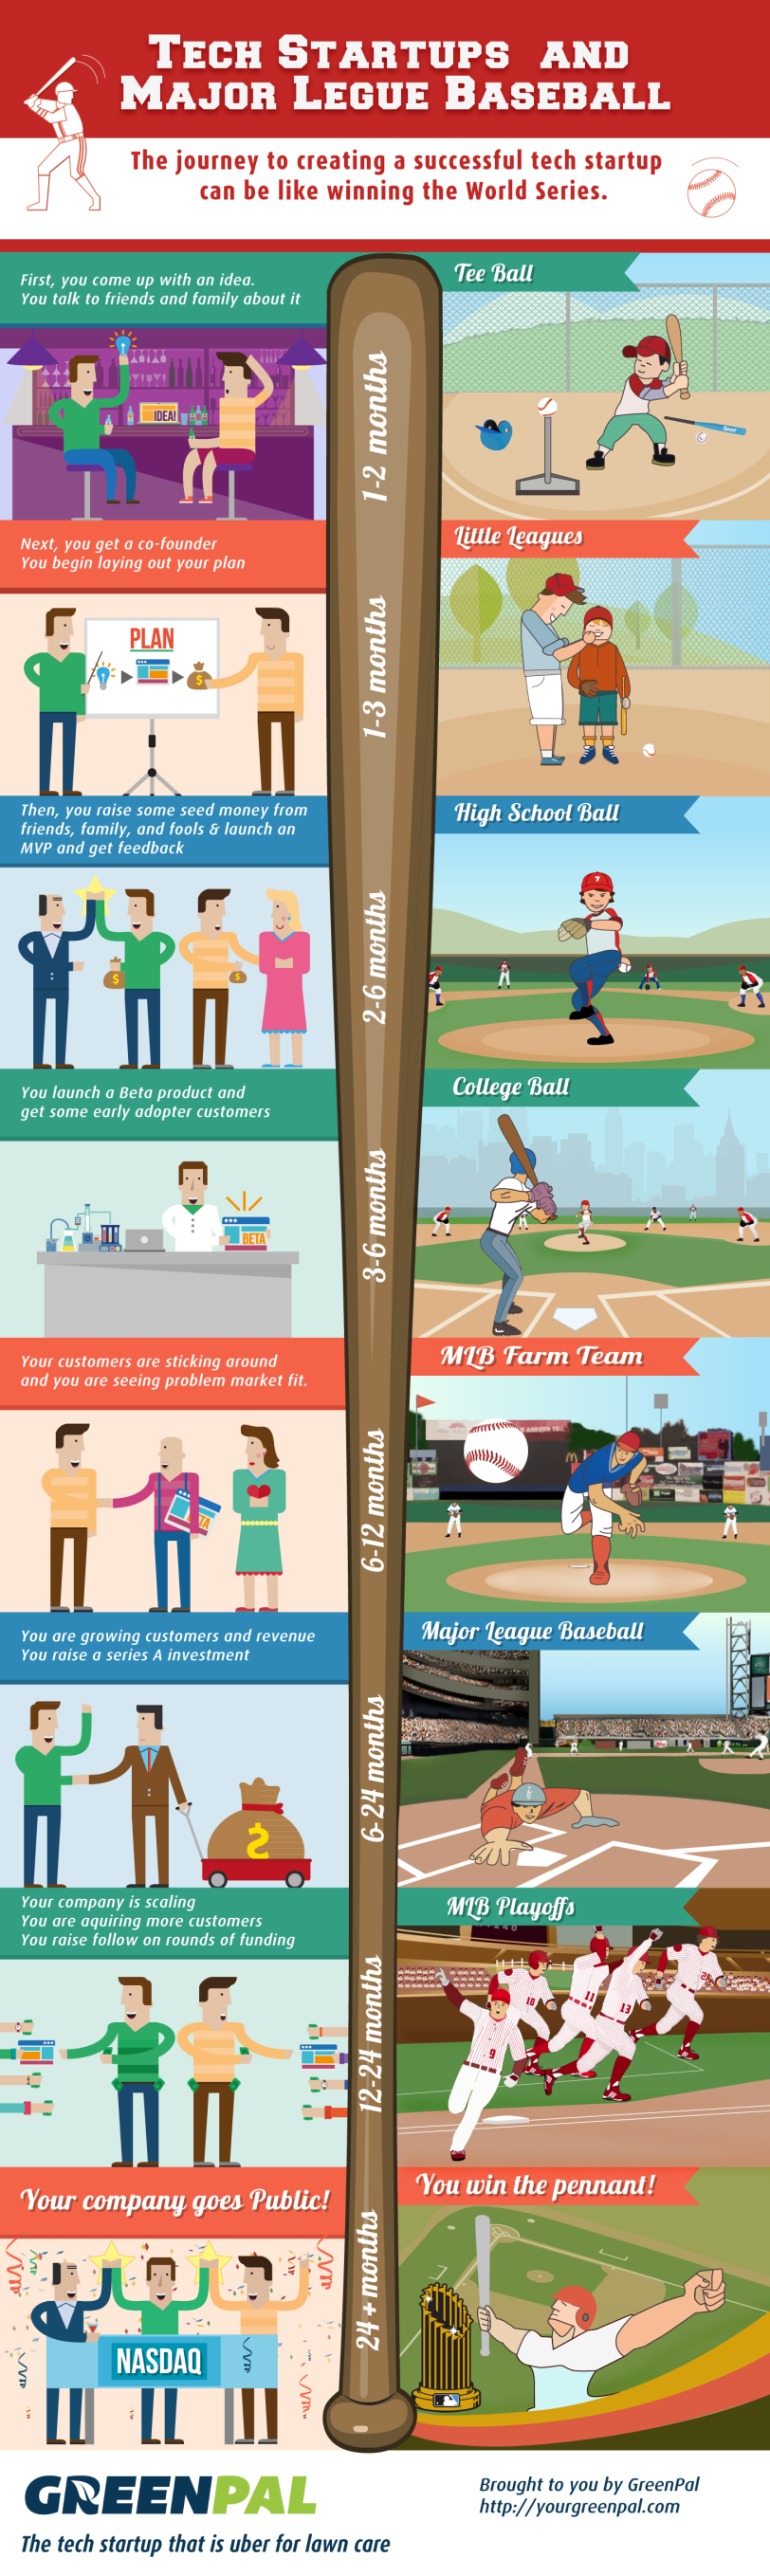 Tech Startups and Major League Baseball